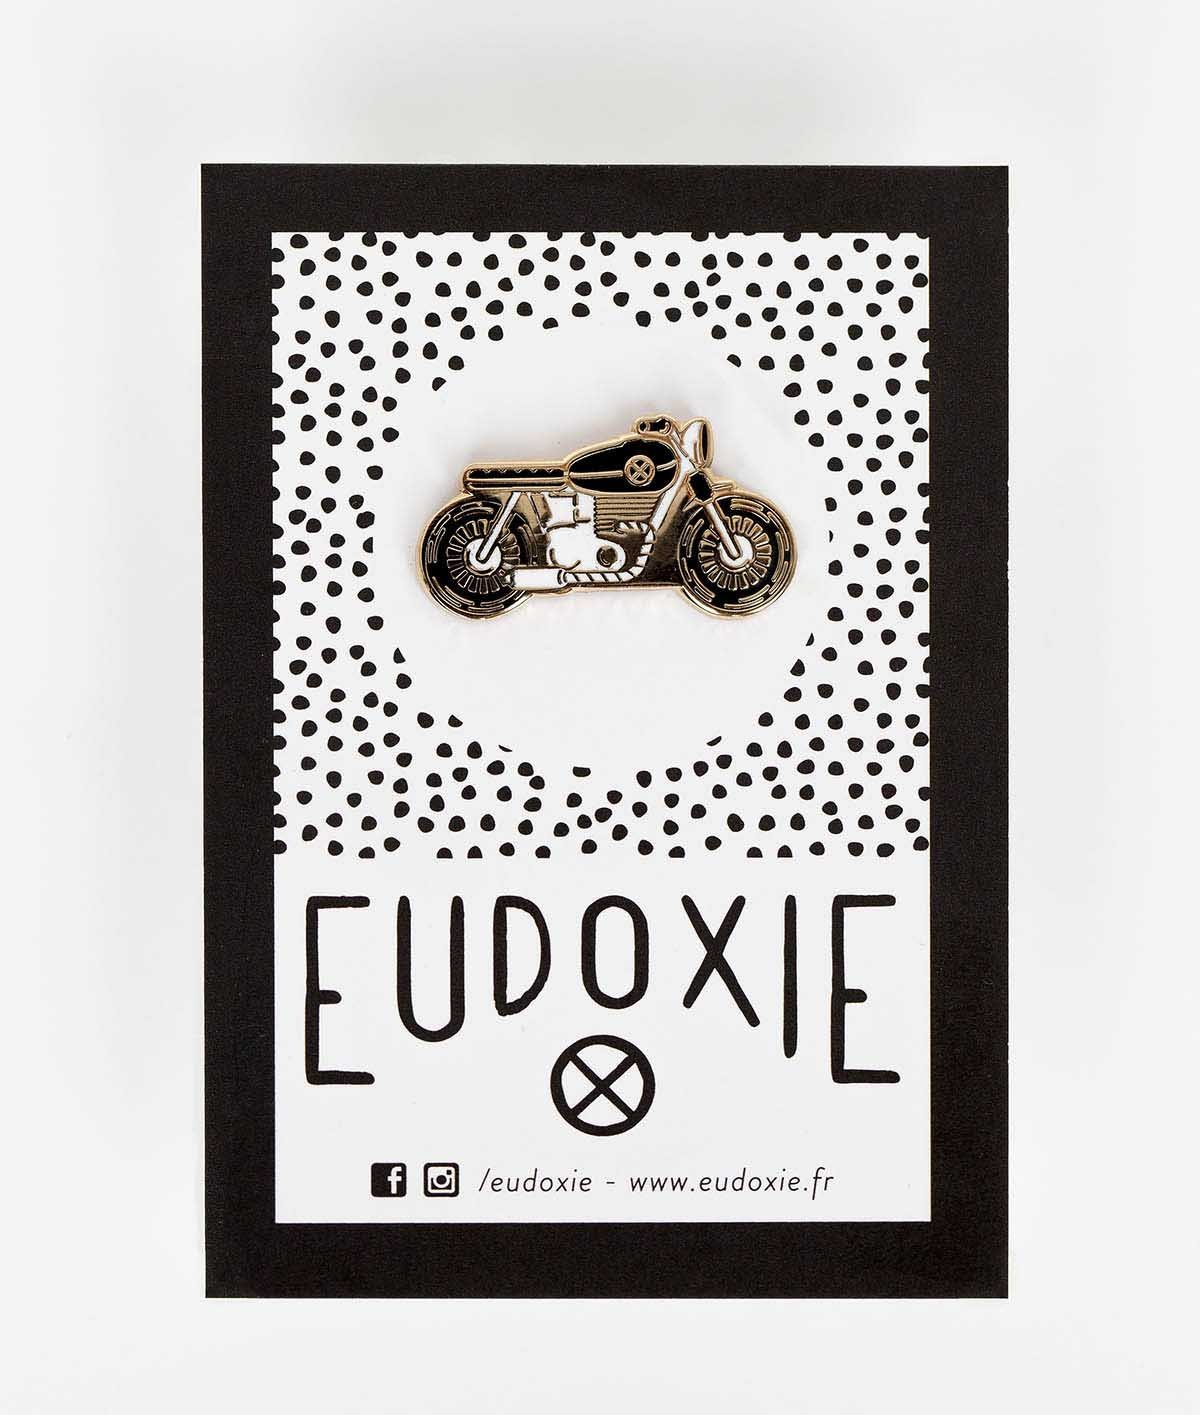 Eudoxie - Eudoxie Bike Pin - Accessories - Salt Flats Clothing